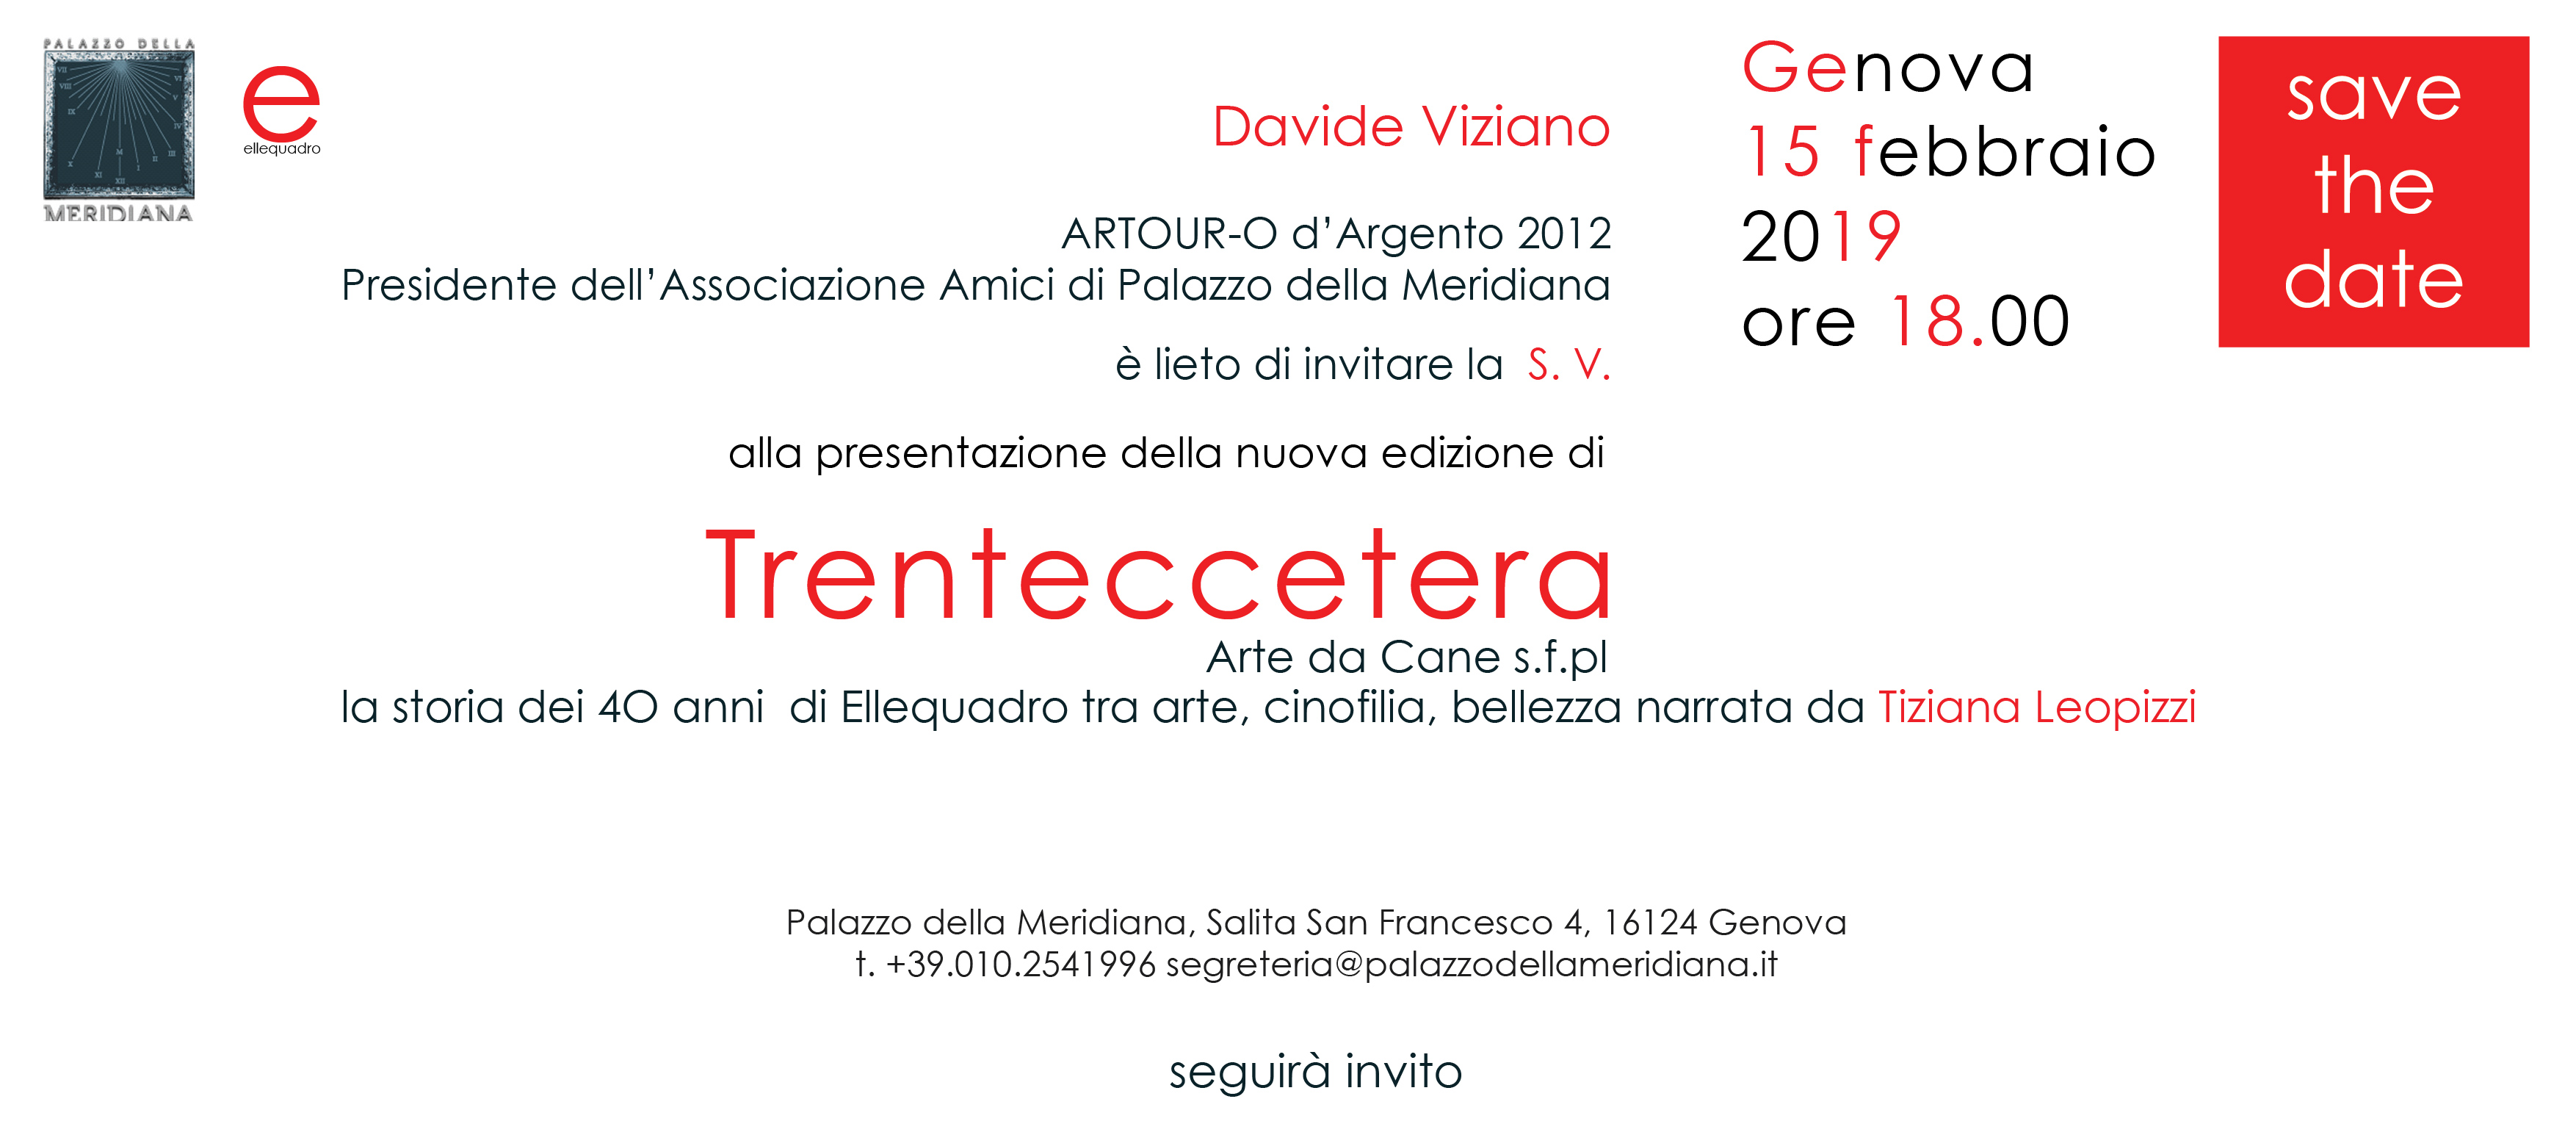 Save the Date Trenteccetera